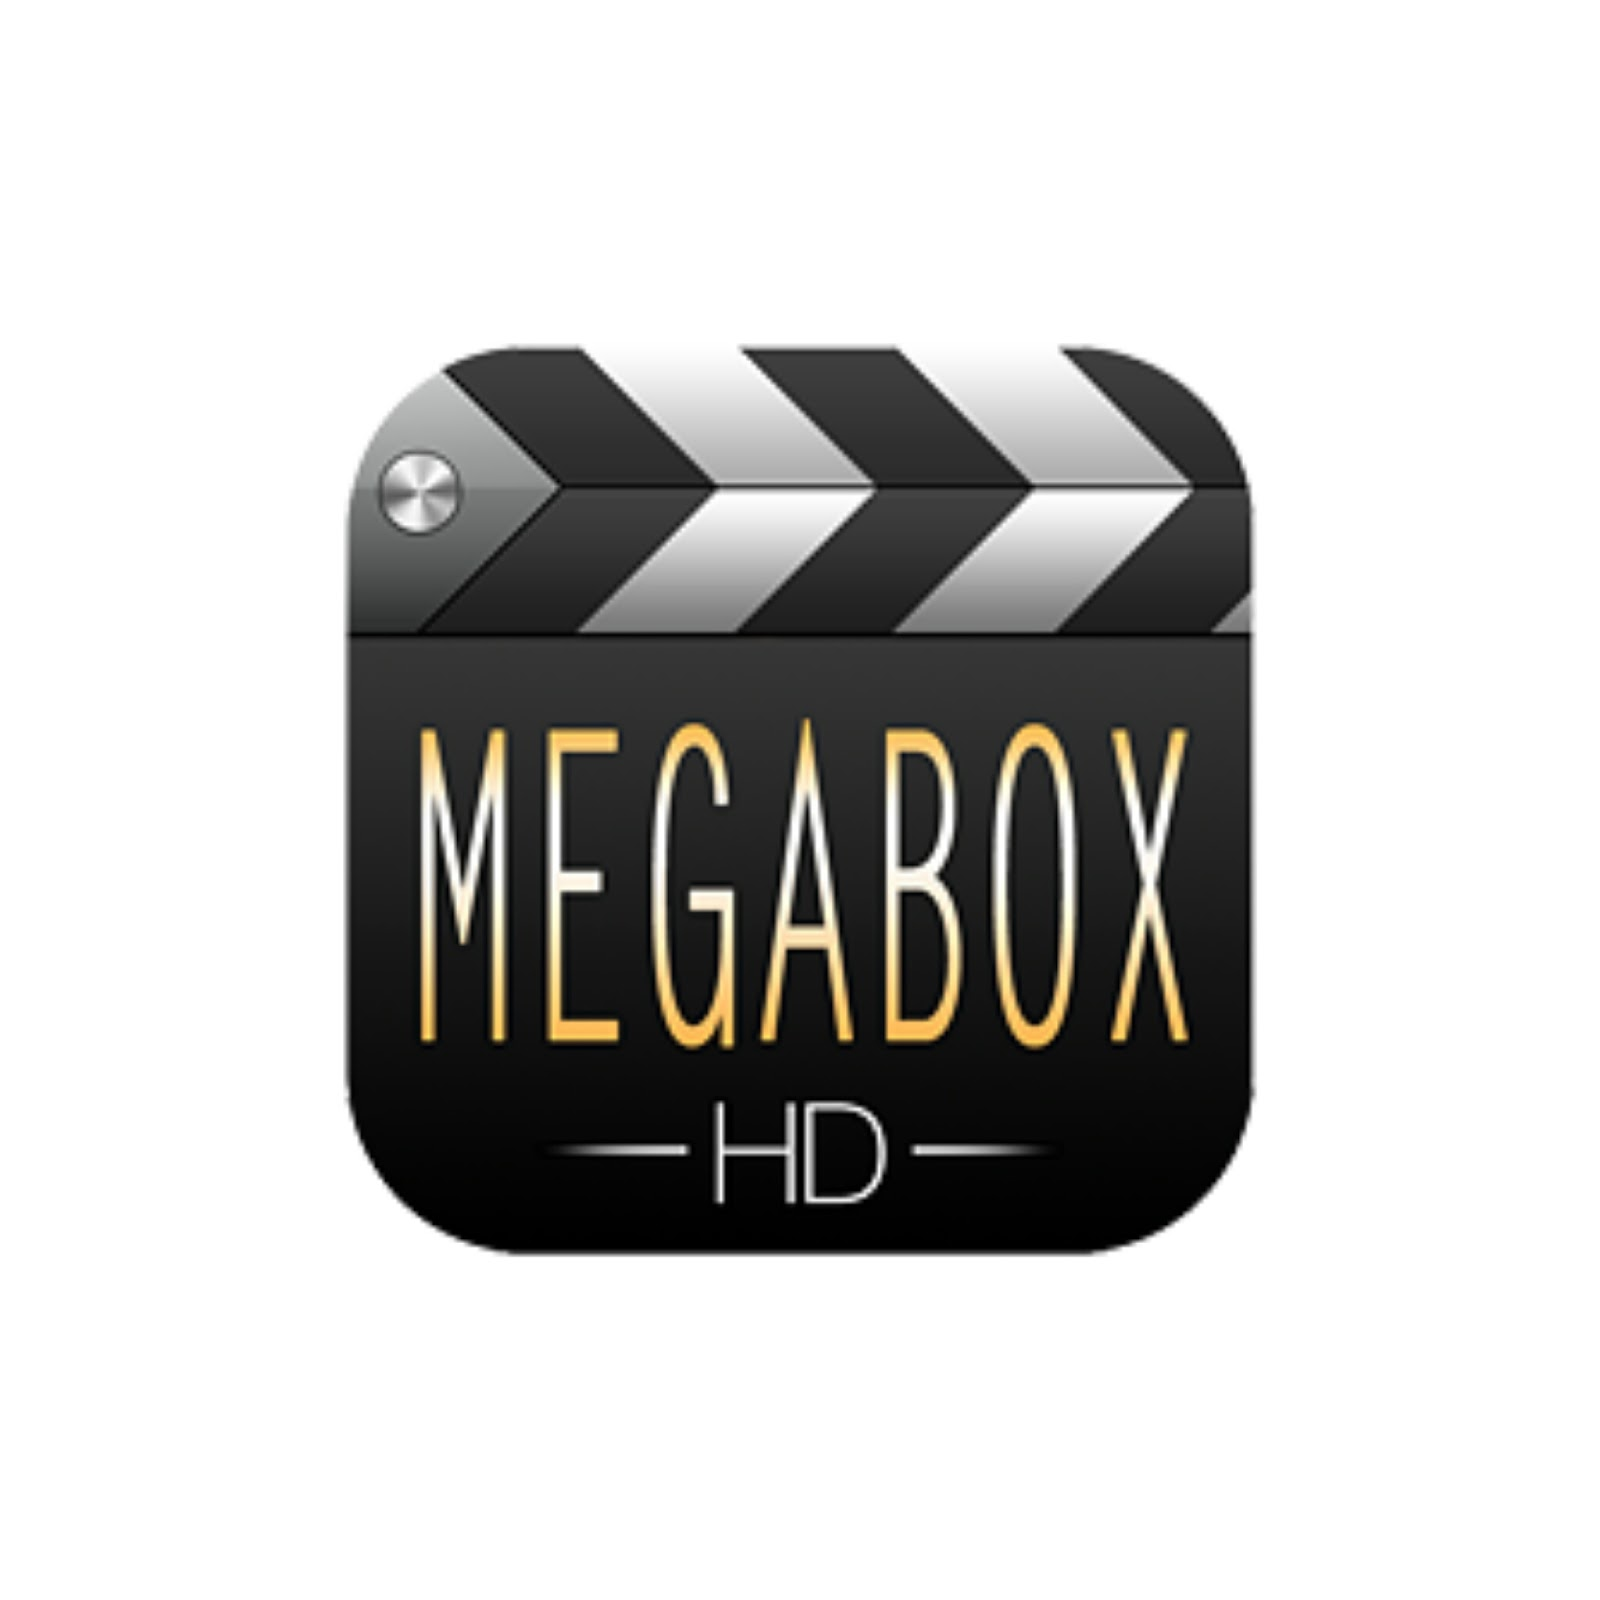 DOWNLOAD YOUR MOVIES EASILY WITH MEGABOX HD | WELCOME TO THE TECH WORLD